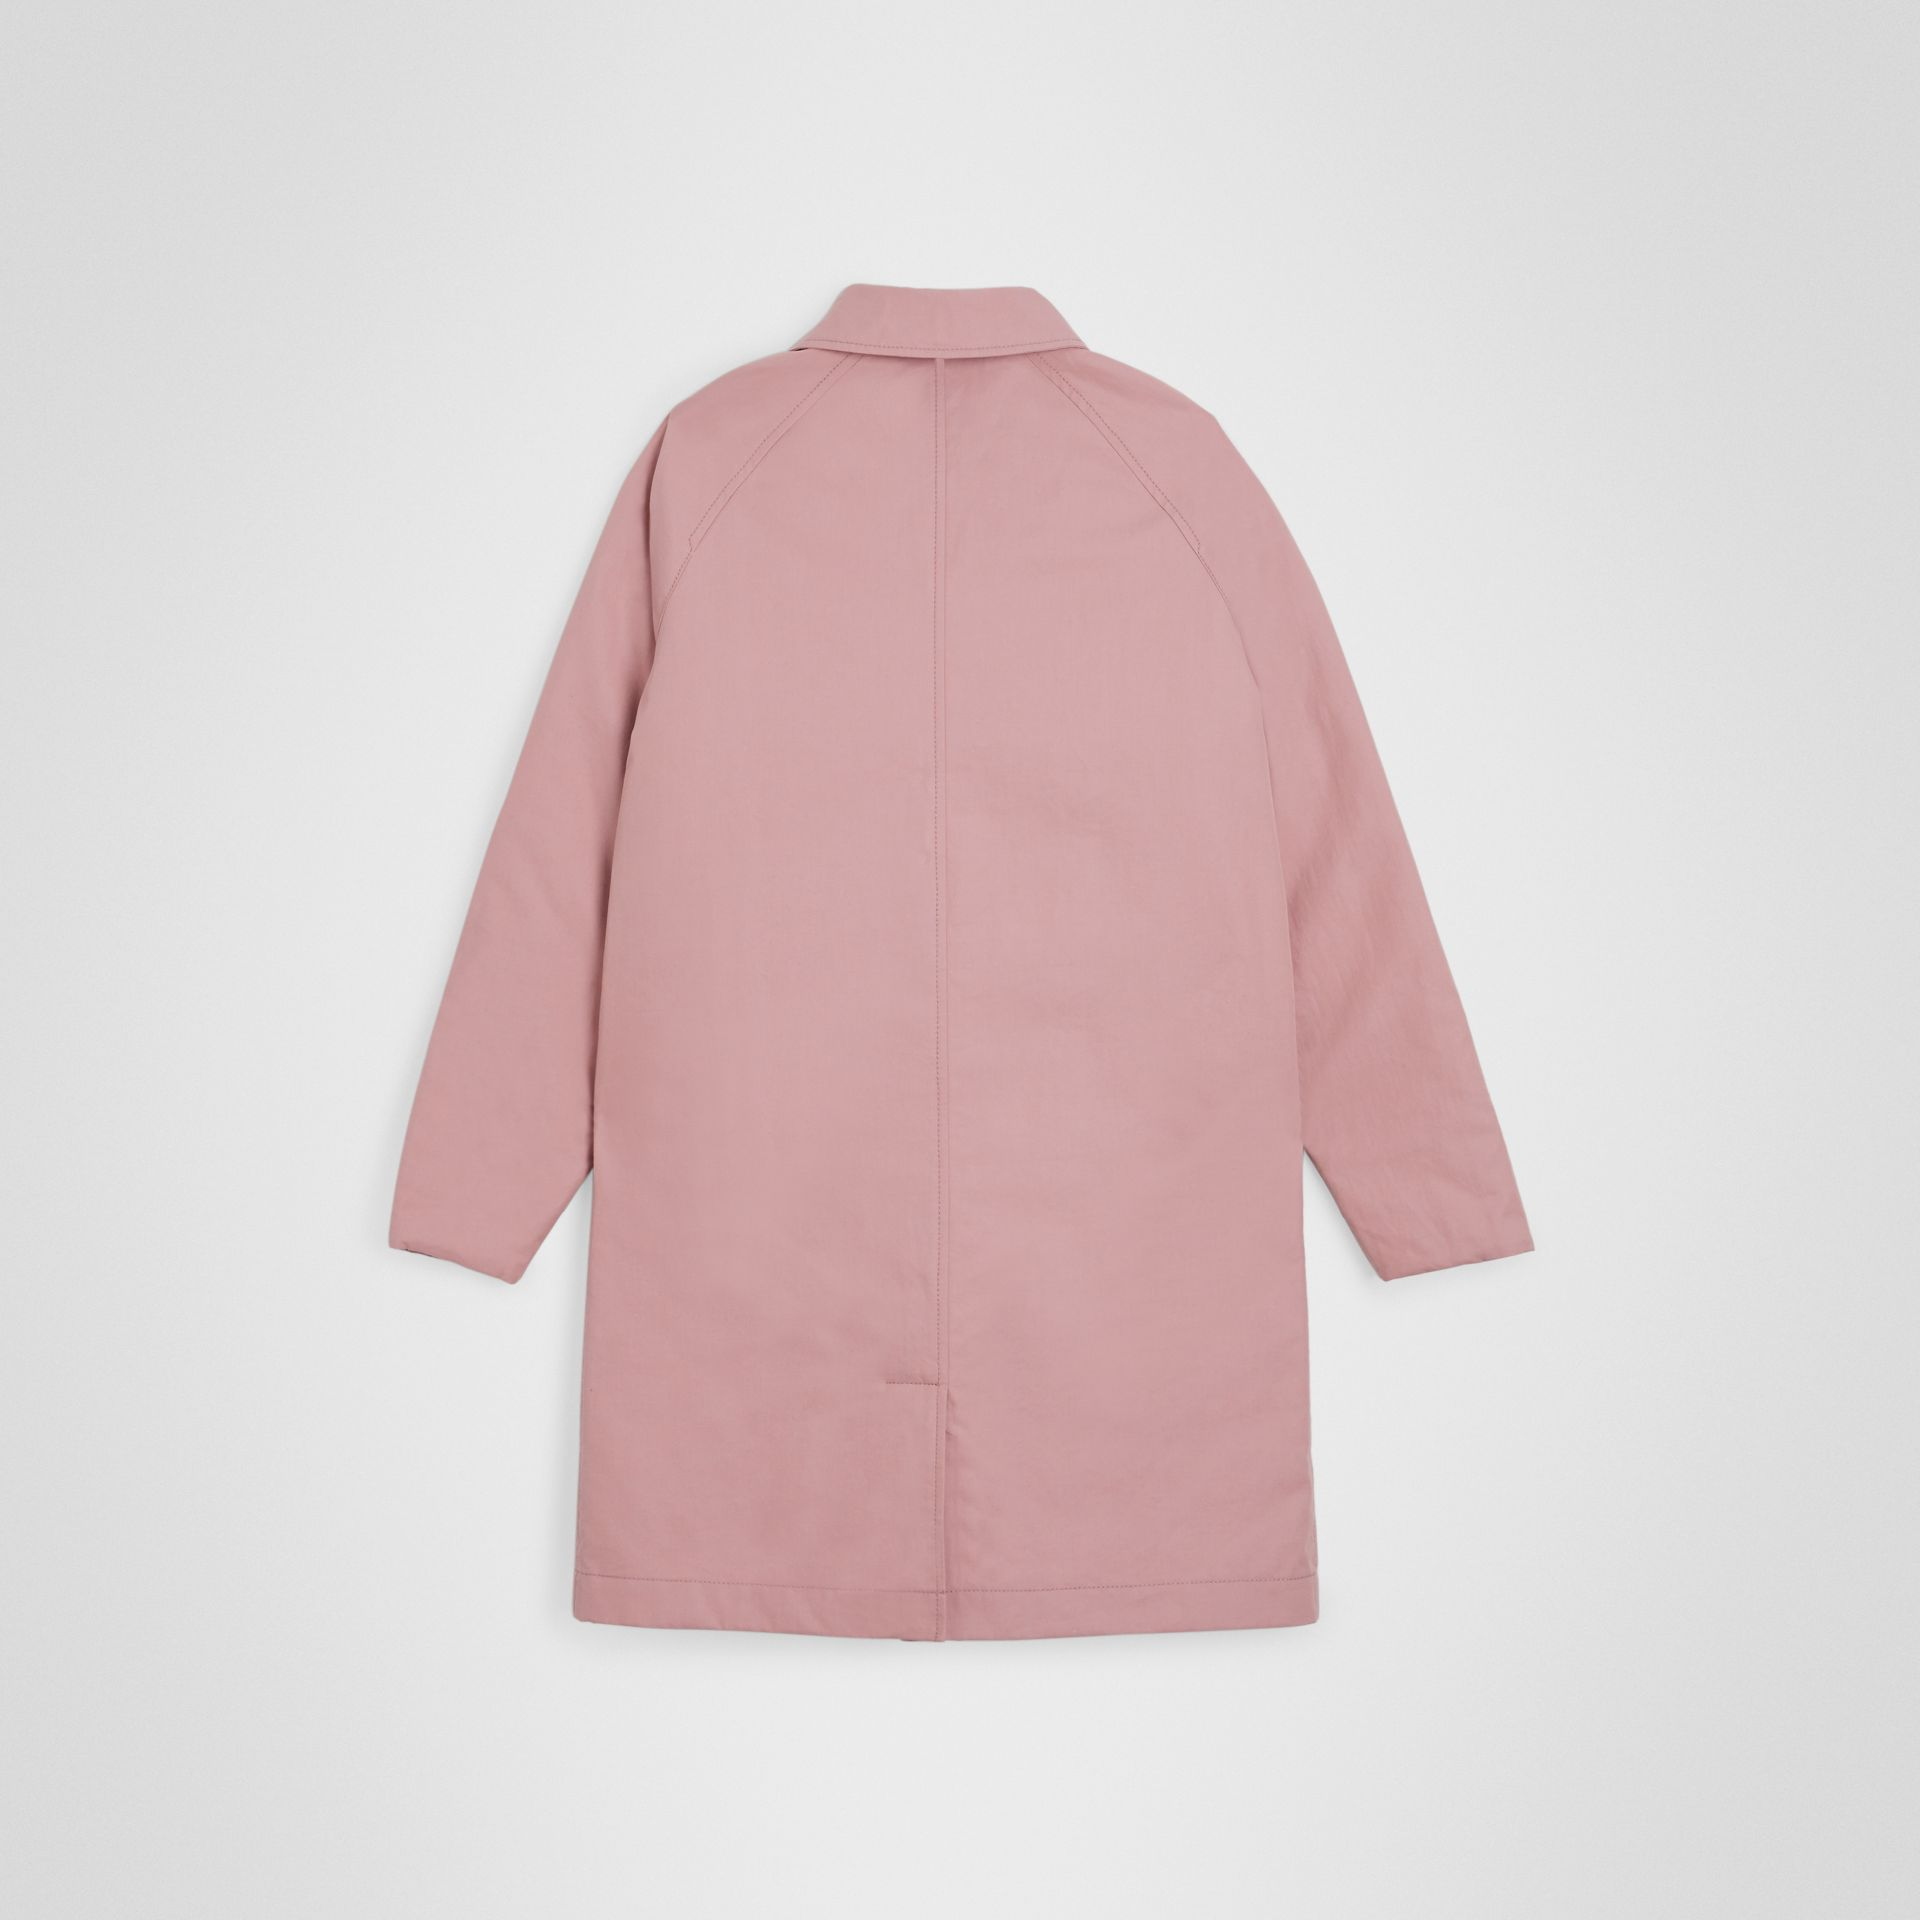 Paletot réversible en gabardine tropicale (Rose Craie) | Burberry Canada - photo de la galerie 4